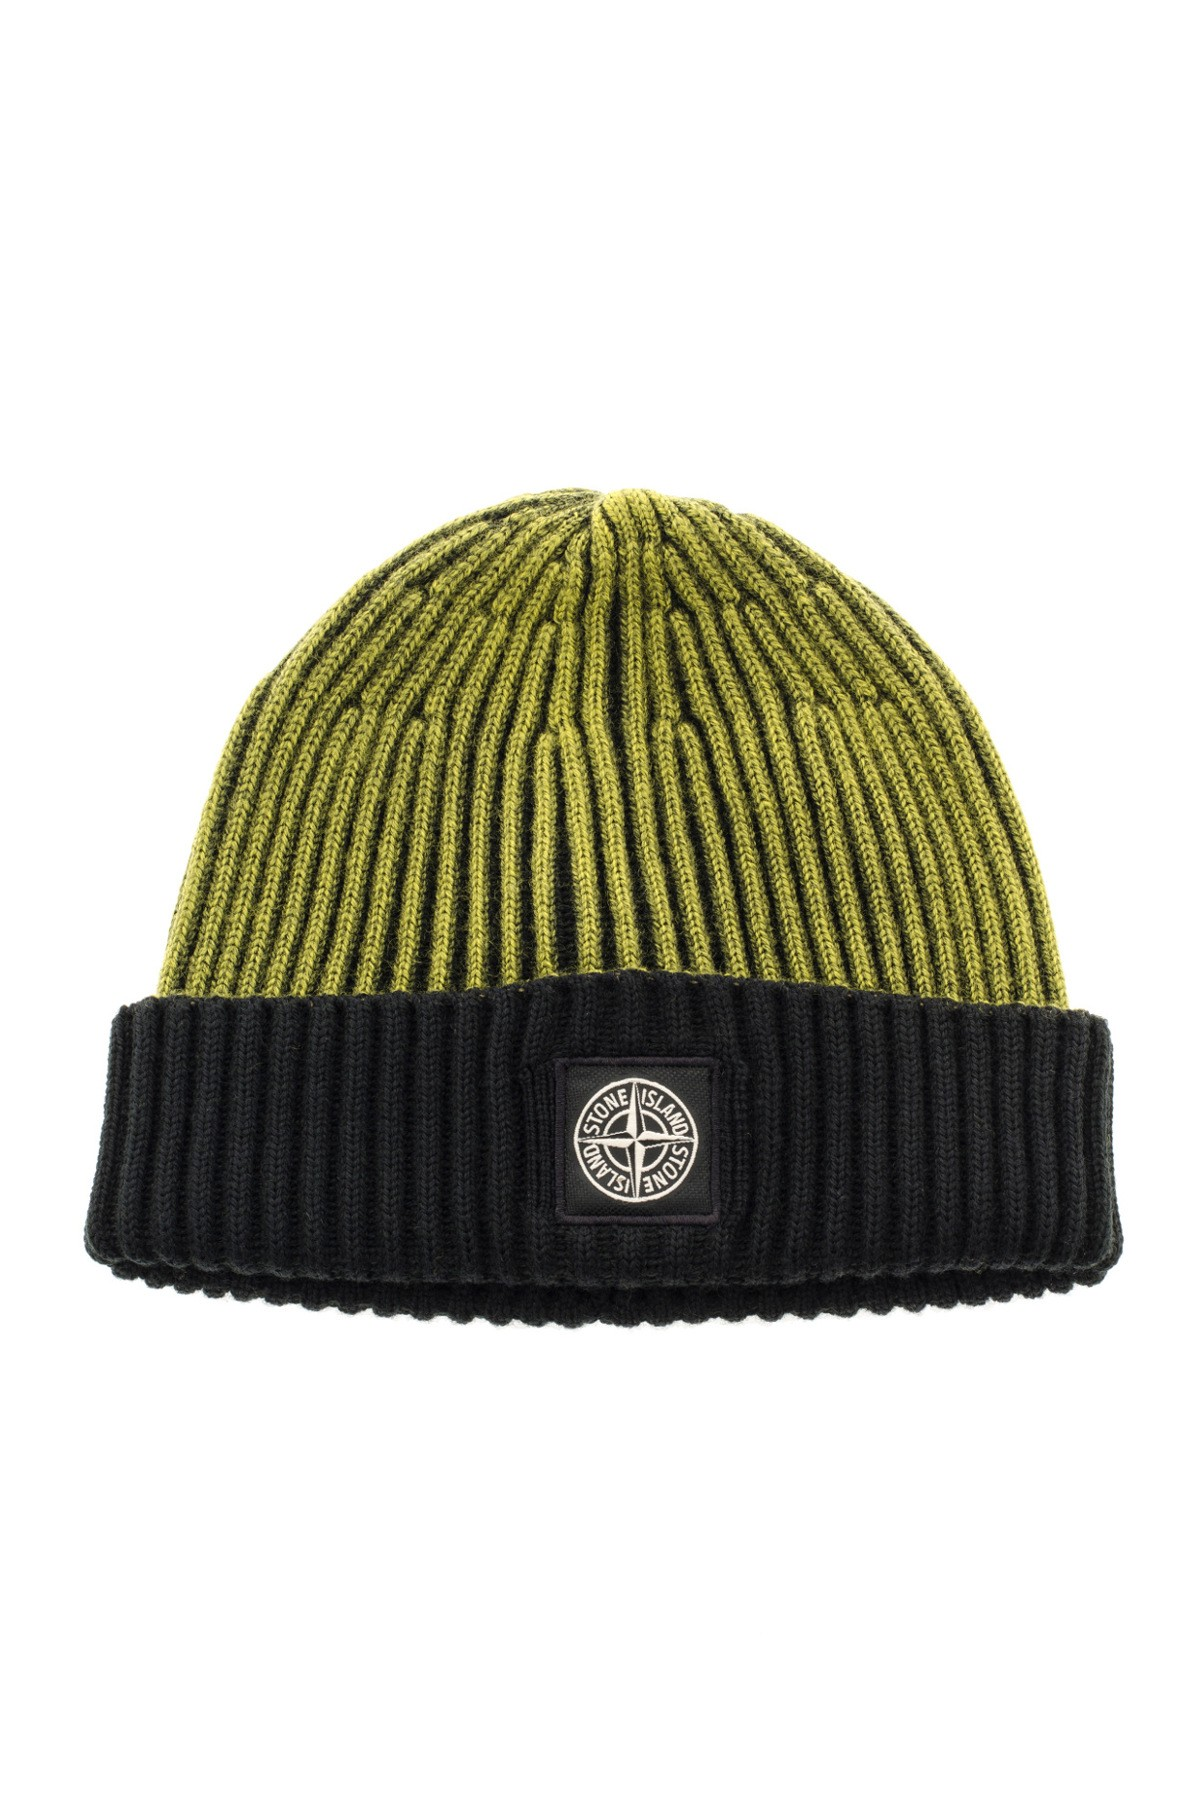 STONE ISLAND Yellow and black cap F W 16-17 - Rione Fontana 34342769000